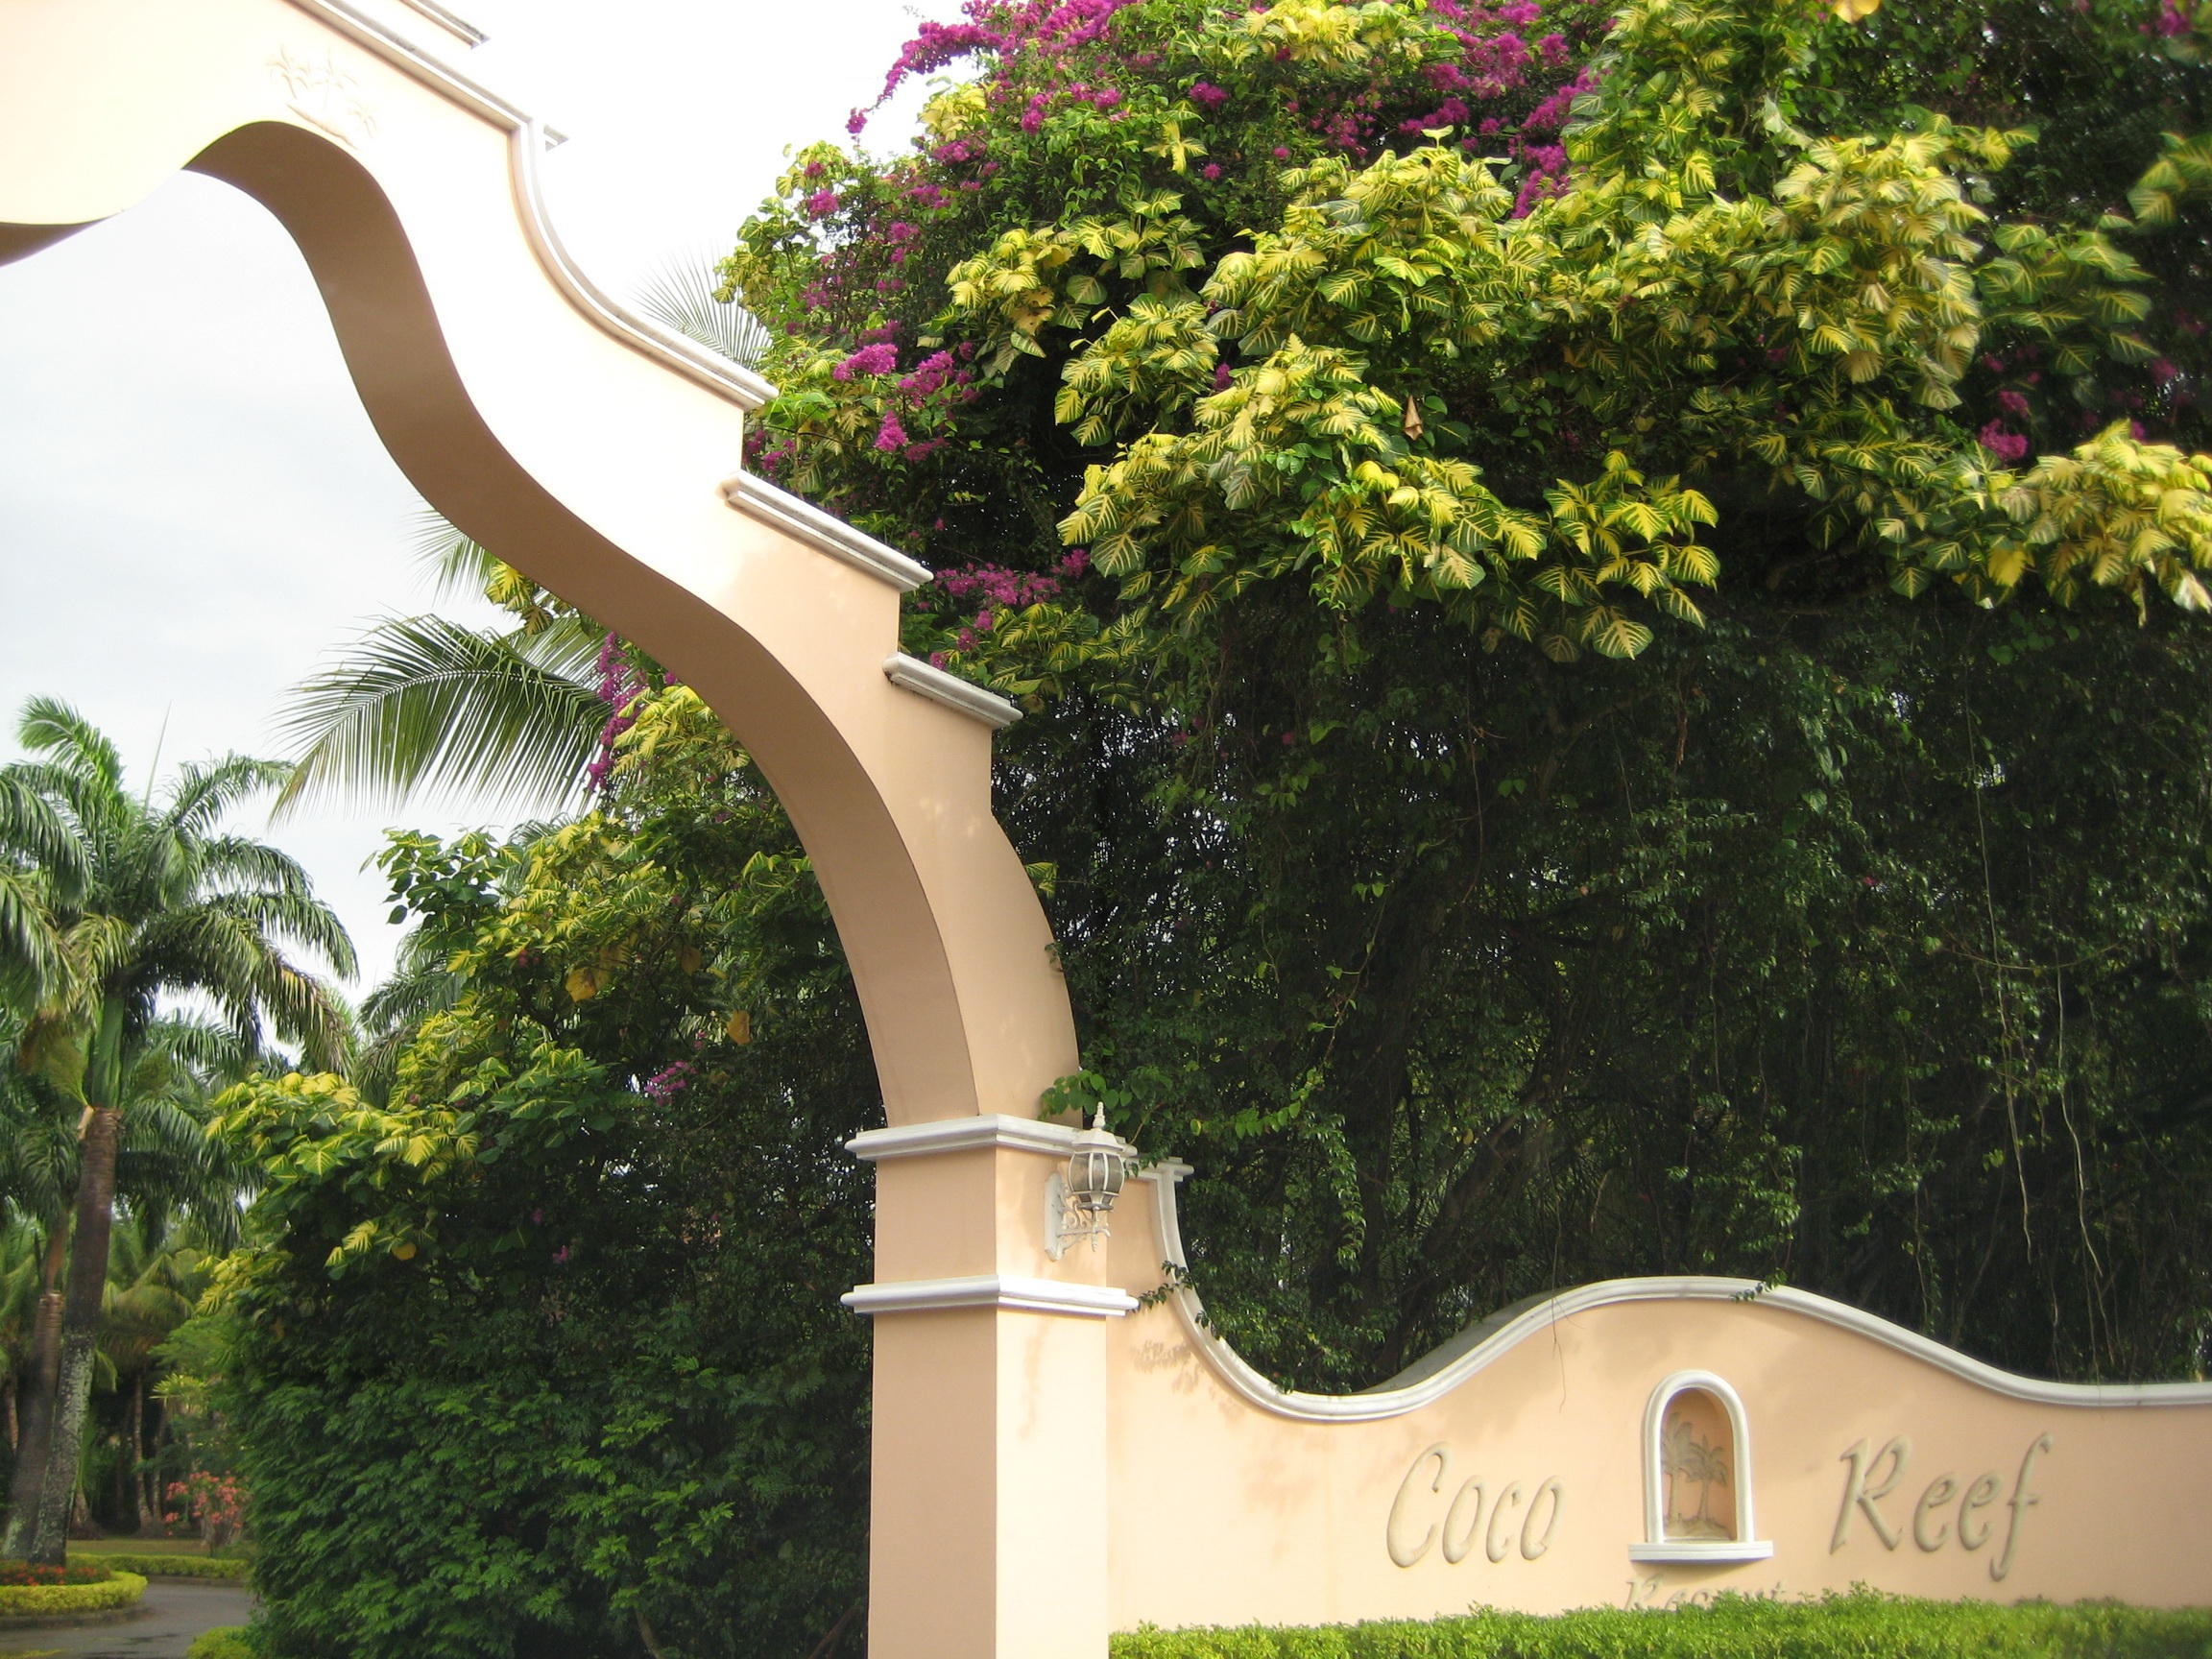 Entrance to Coco Reef Resort